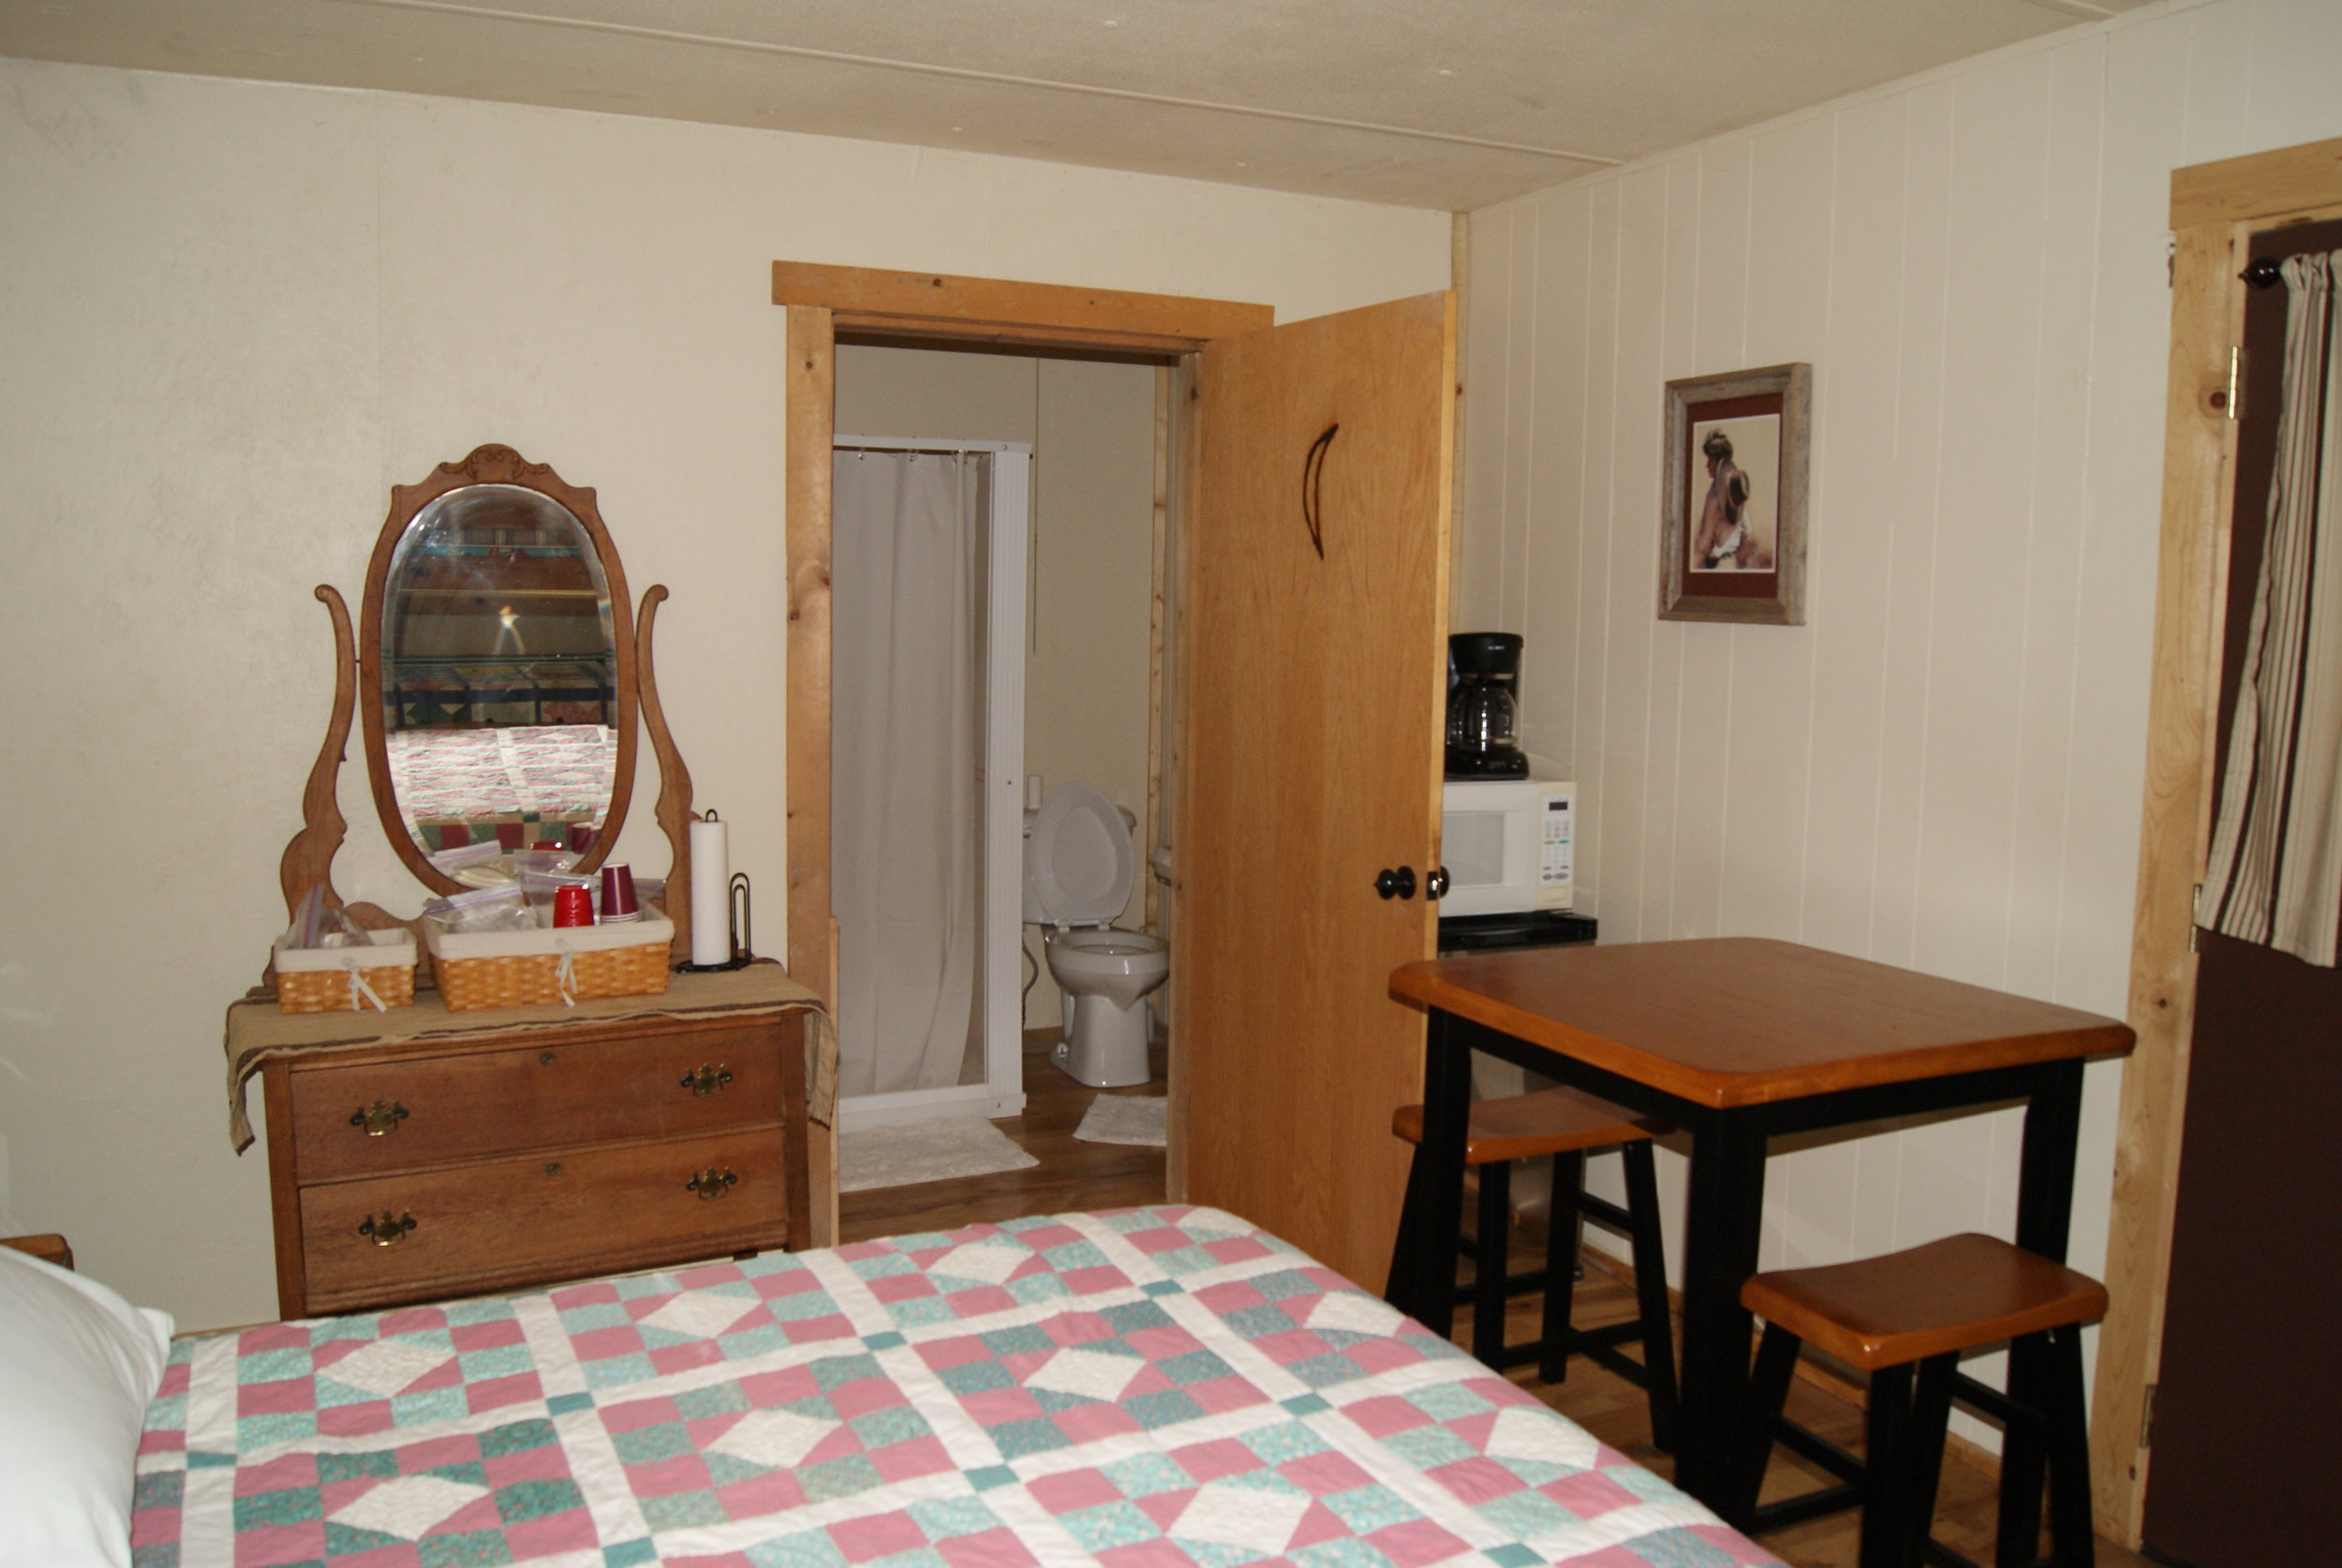 The Bunkhouse: Osage kitchenette and bathroom entry